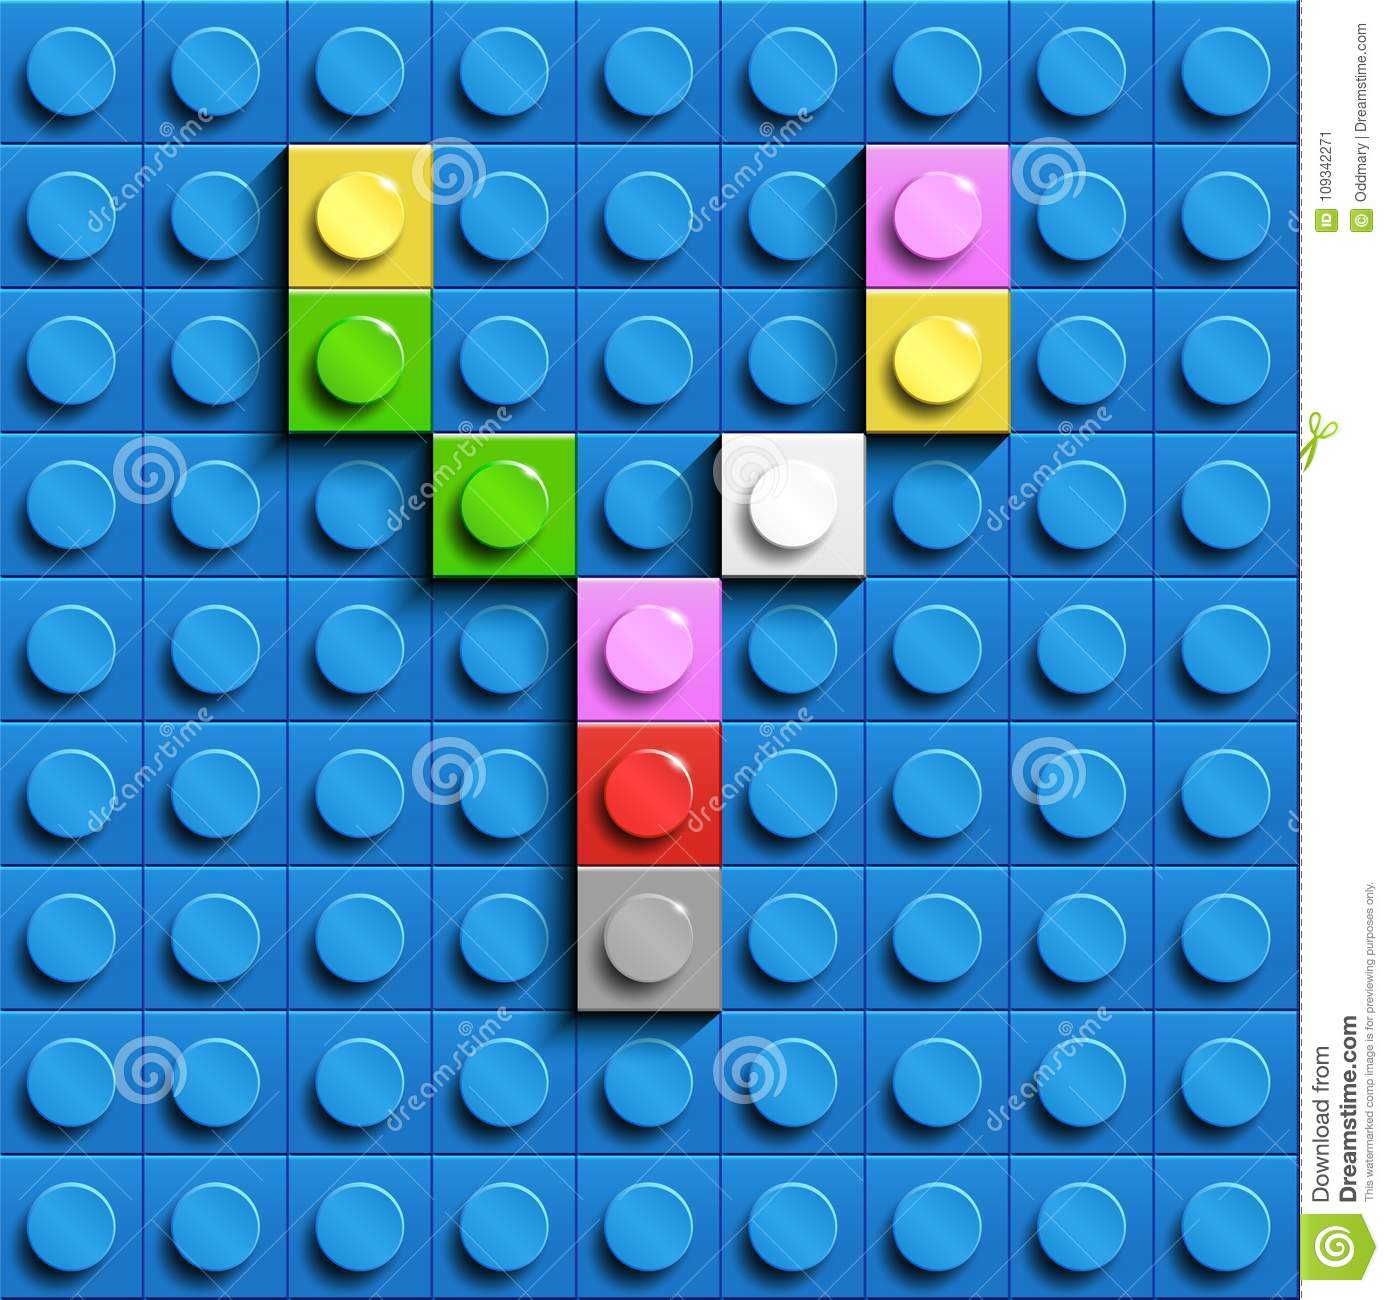 Colorful letter Y from building lego bricks on blue lego background. Lego letter M